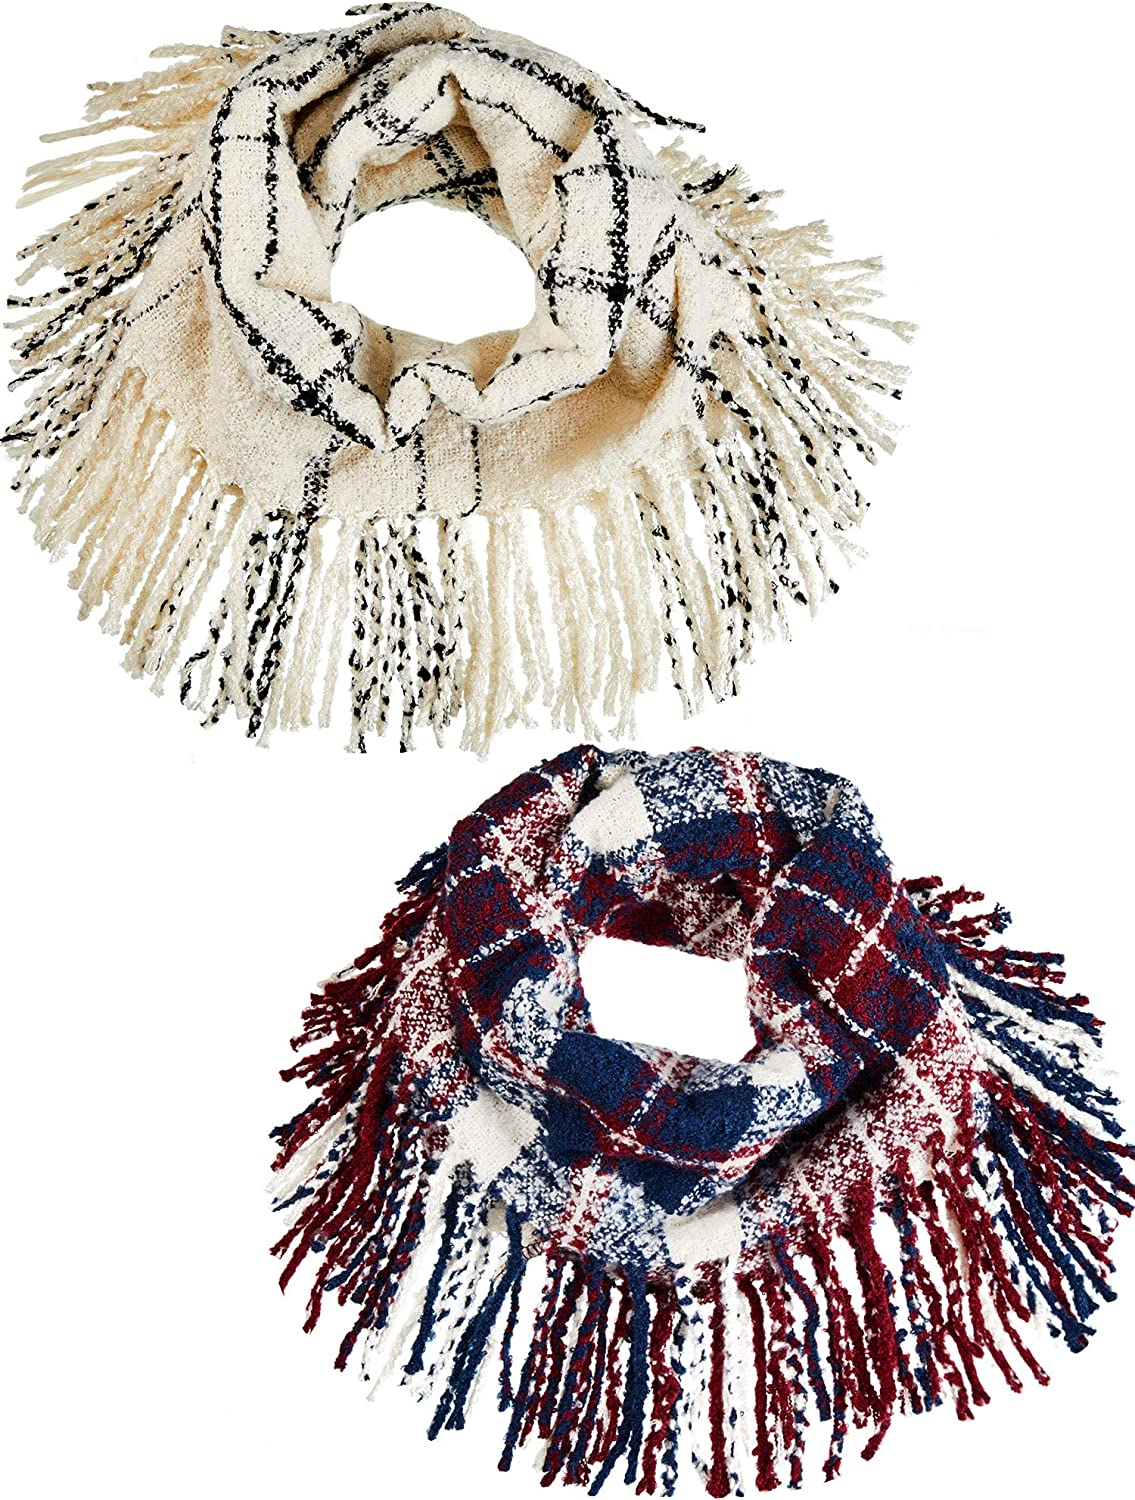 2 Pieces Ladies Winter Plaid Infinity Scarf Warm Fringed Knitted Scarf Shawl Plaid Tassel Winter Scarves for Women